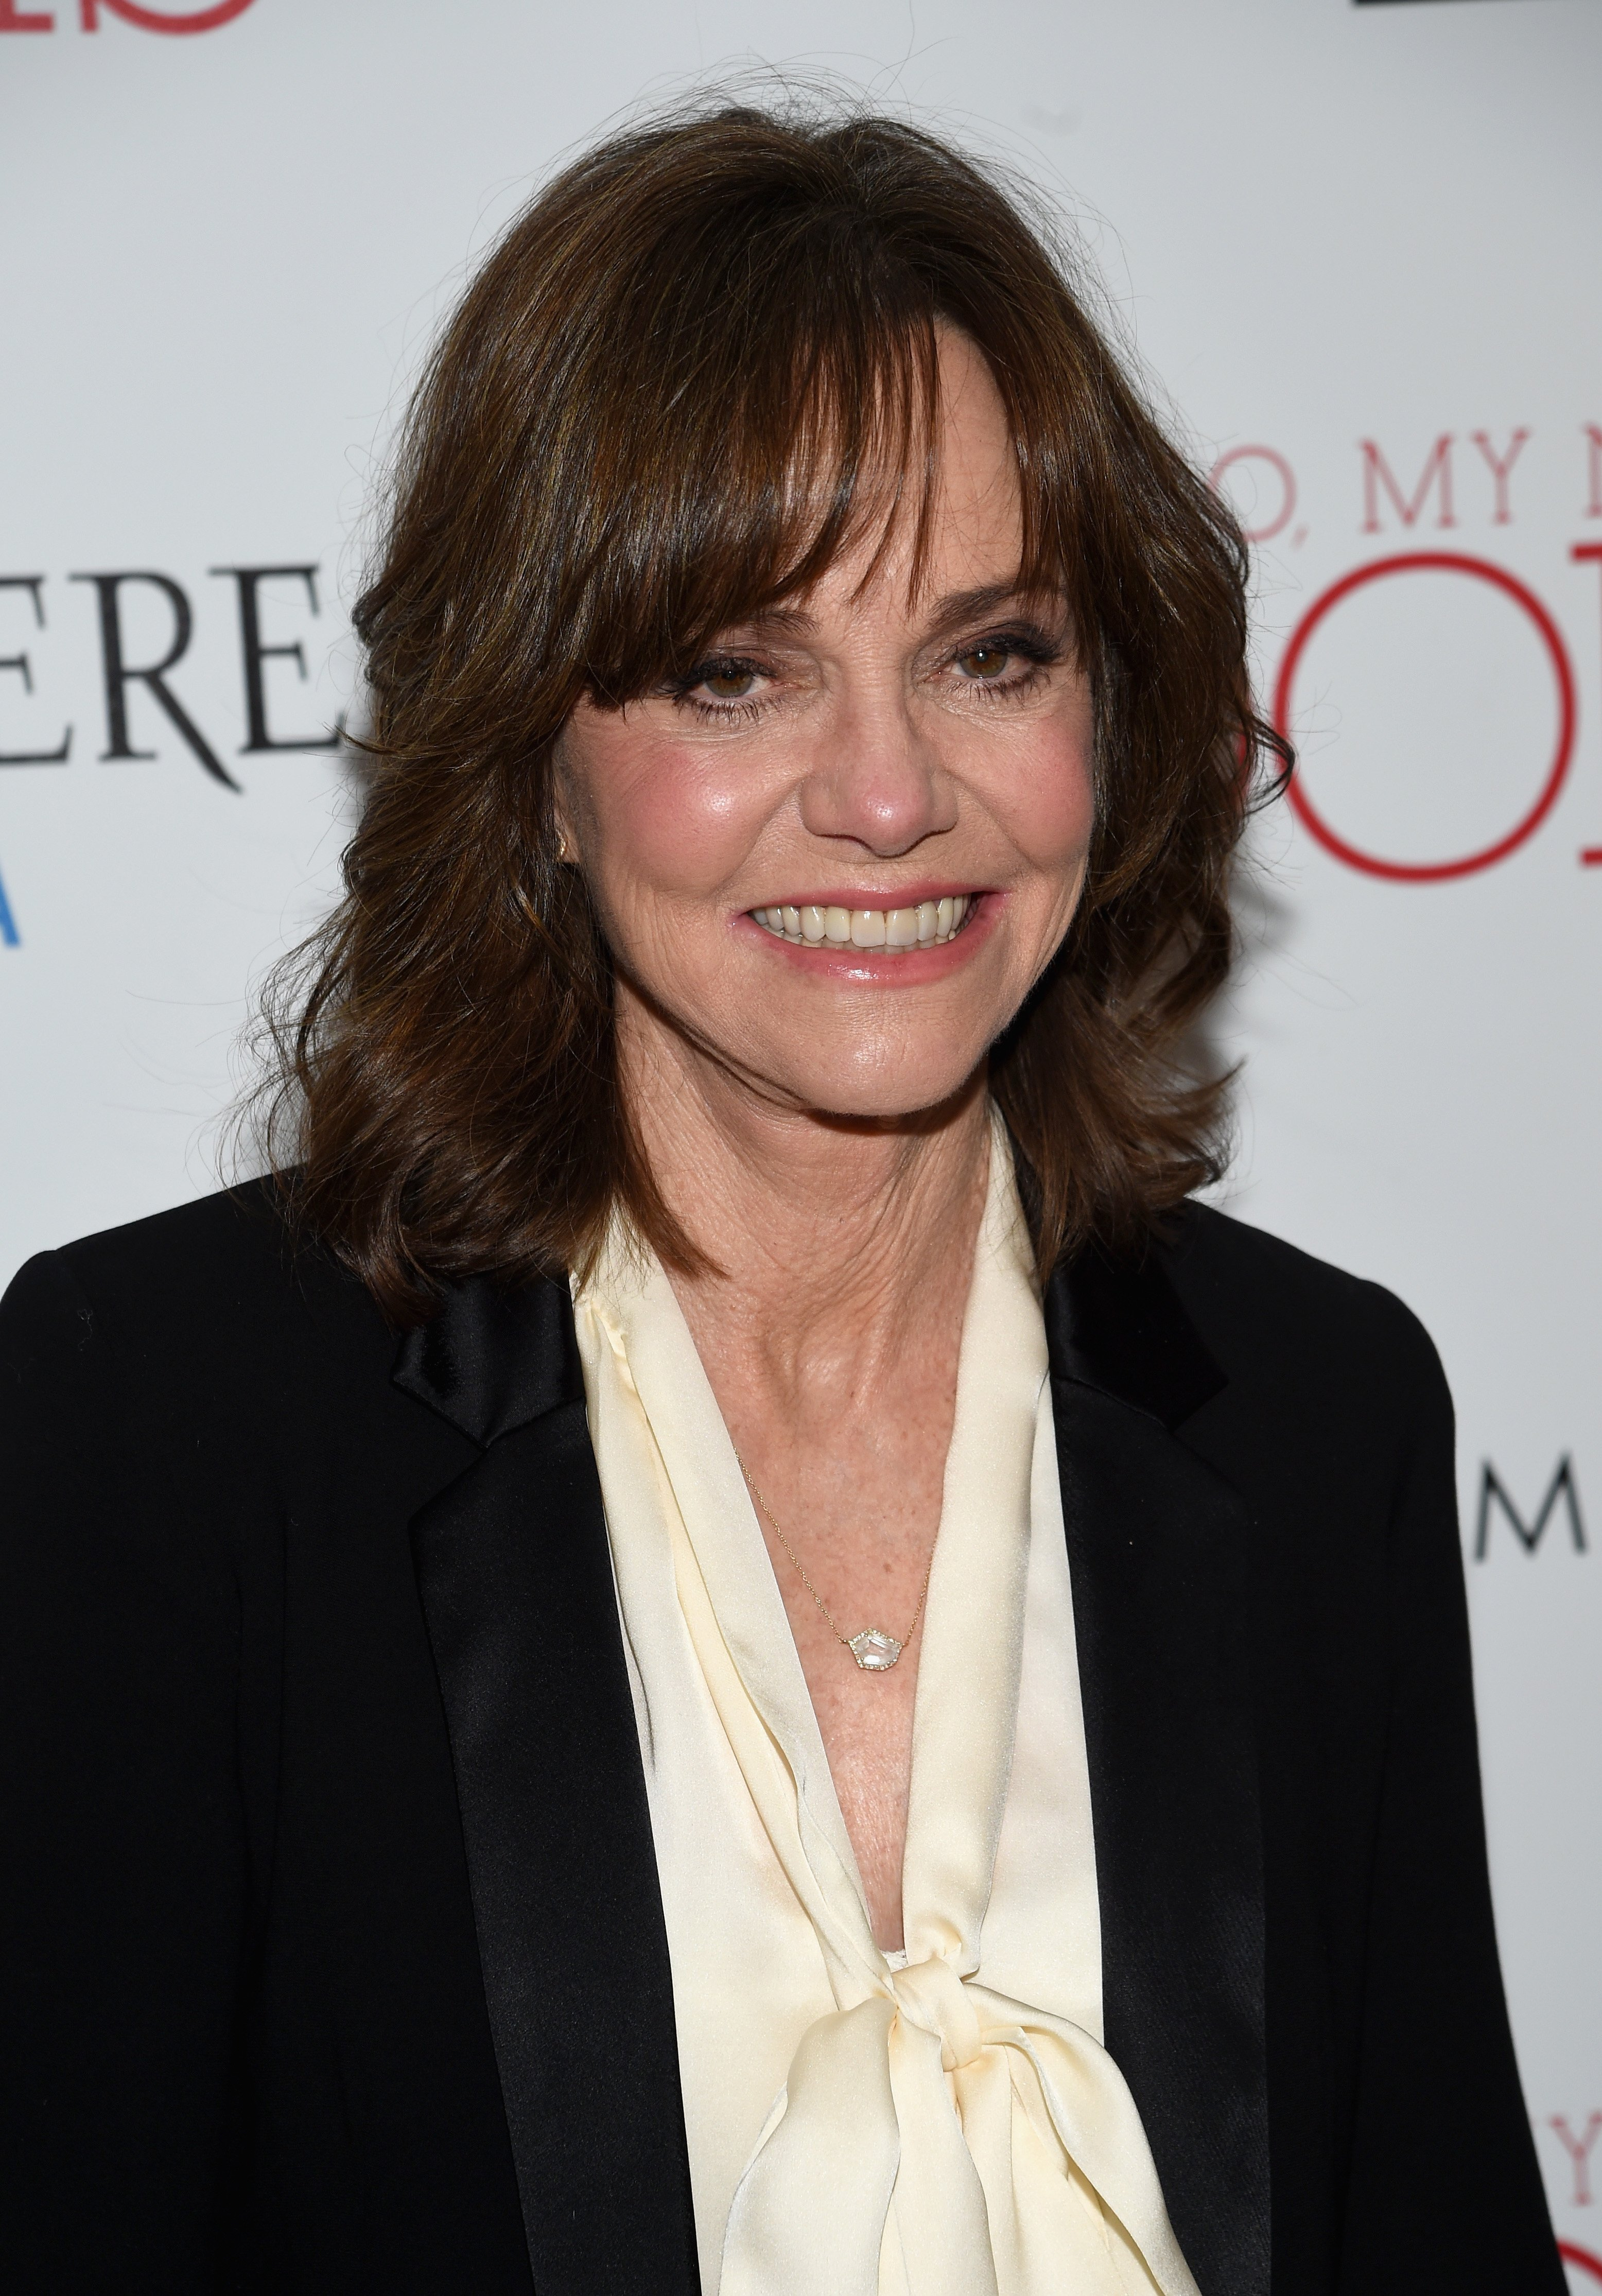 """Actress Sally Field at the New York premiere of """"Hello, My Name Is Doris"""" in New York.   Source: Getty Images"""